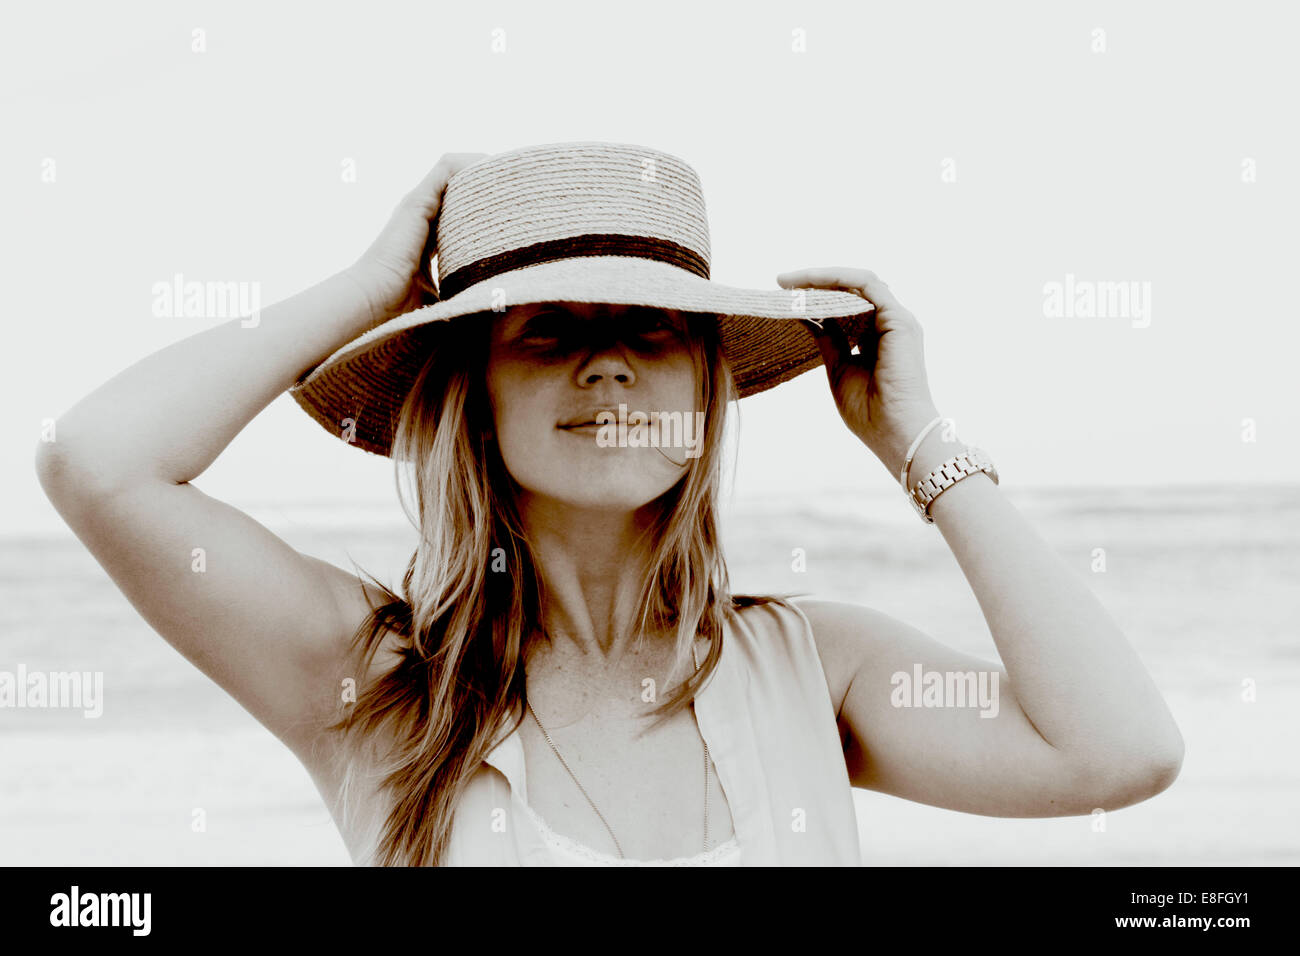 Portrait of a woman standing on beach holding her hat Photo Stock